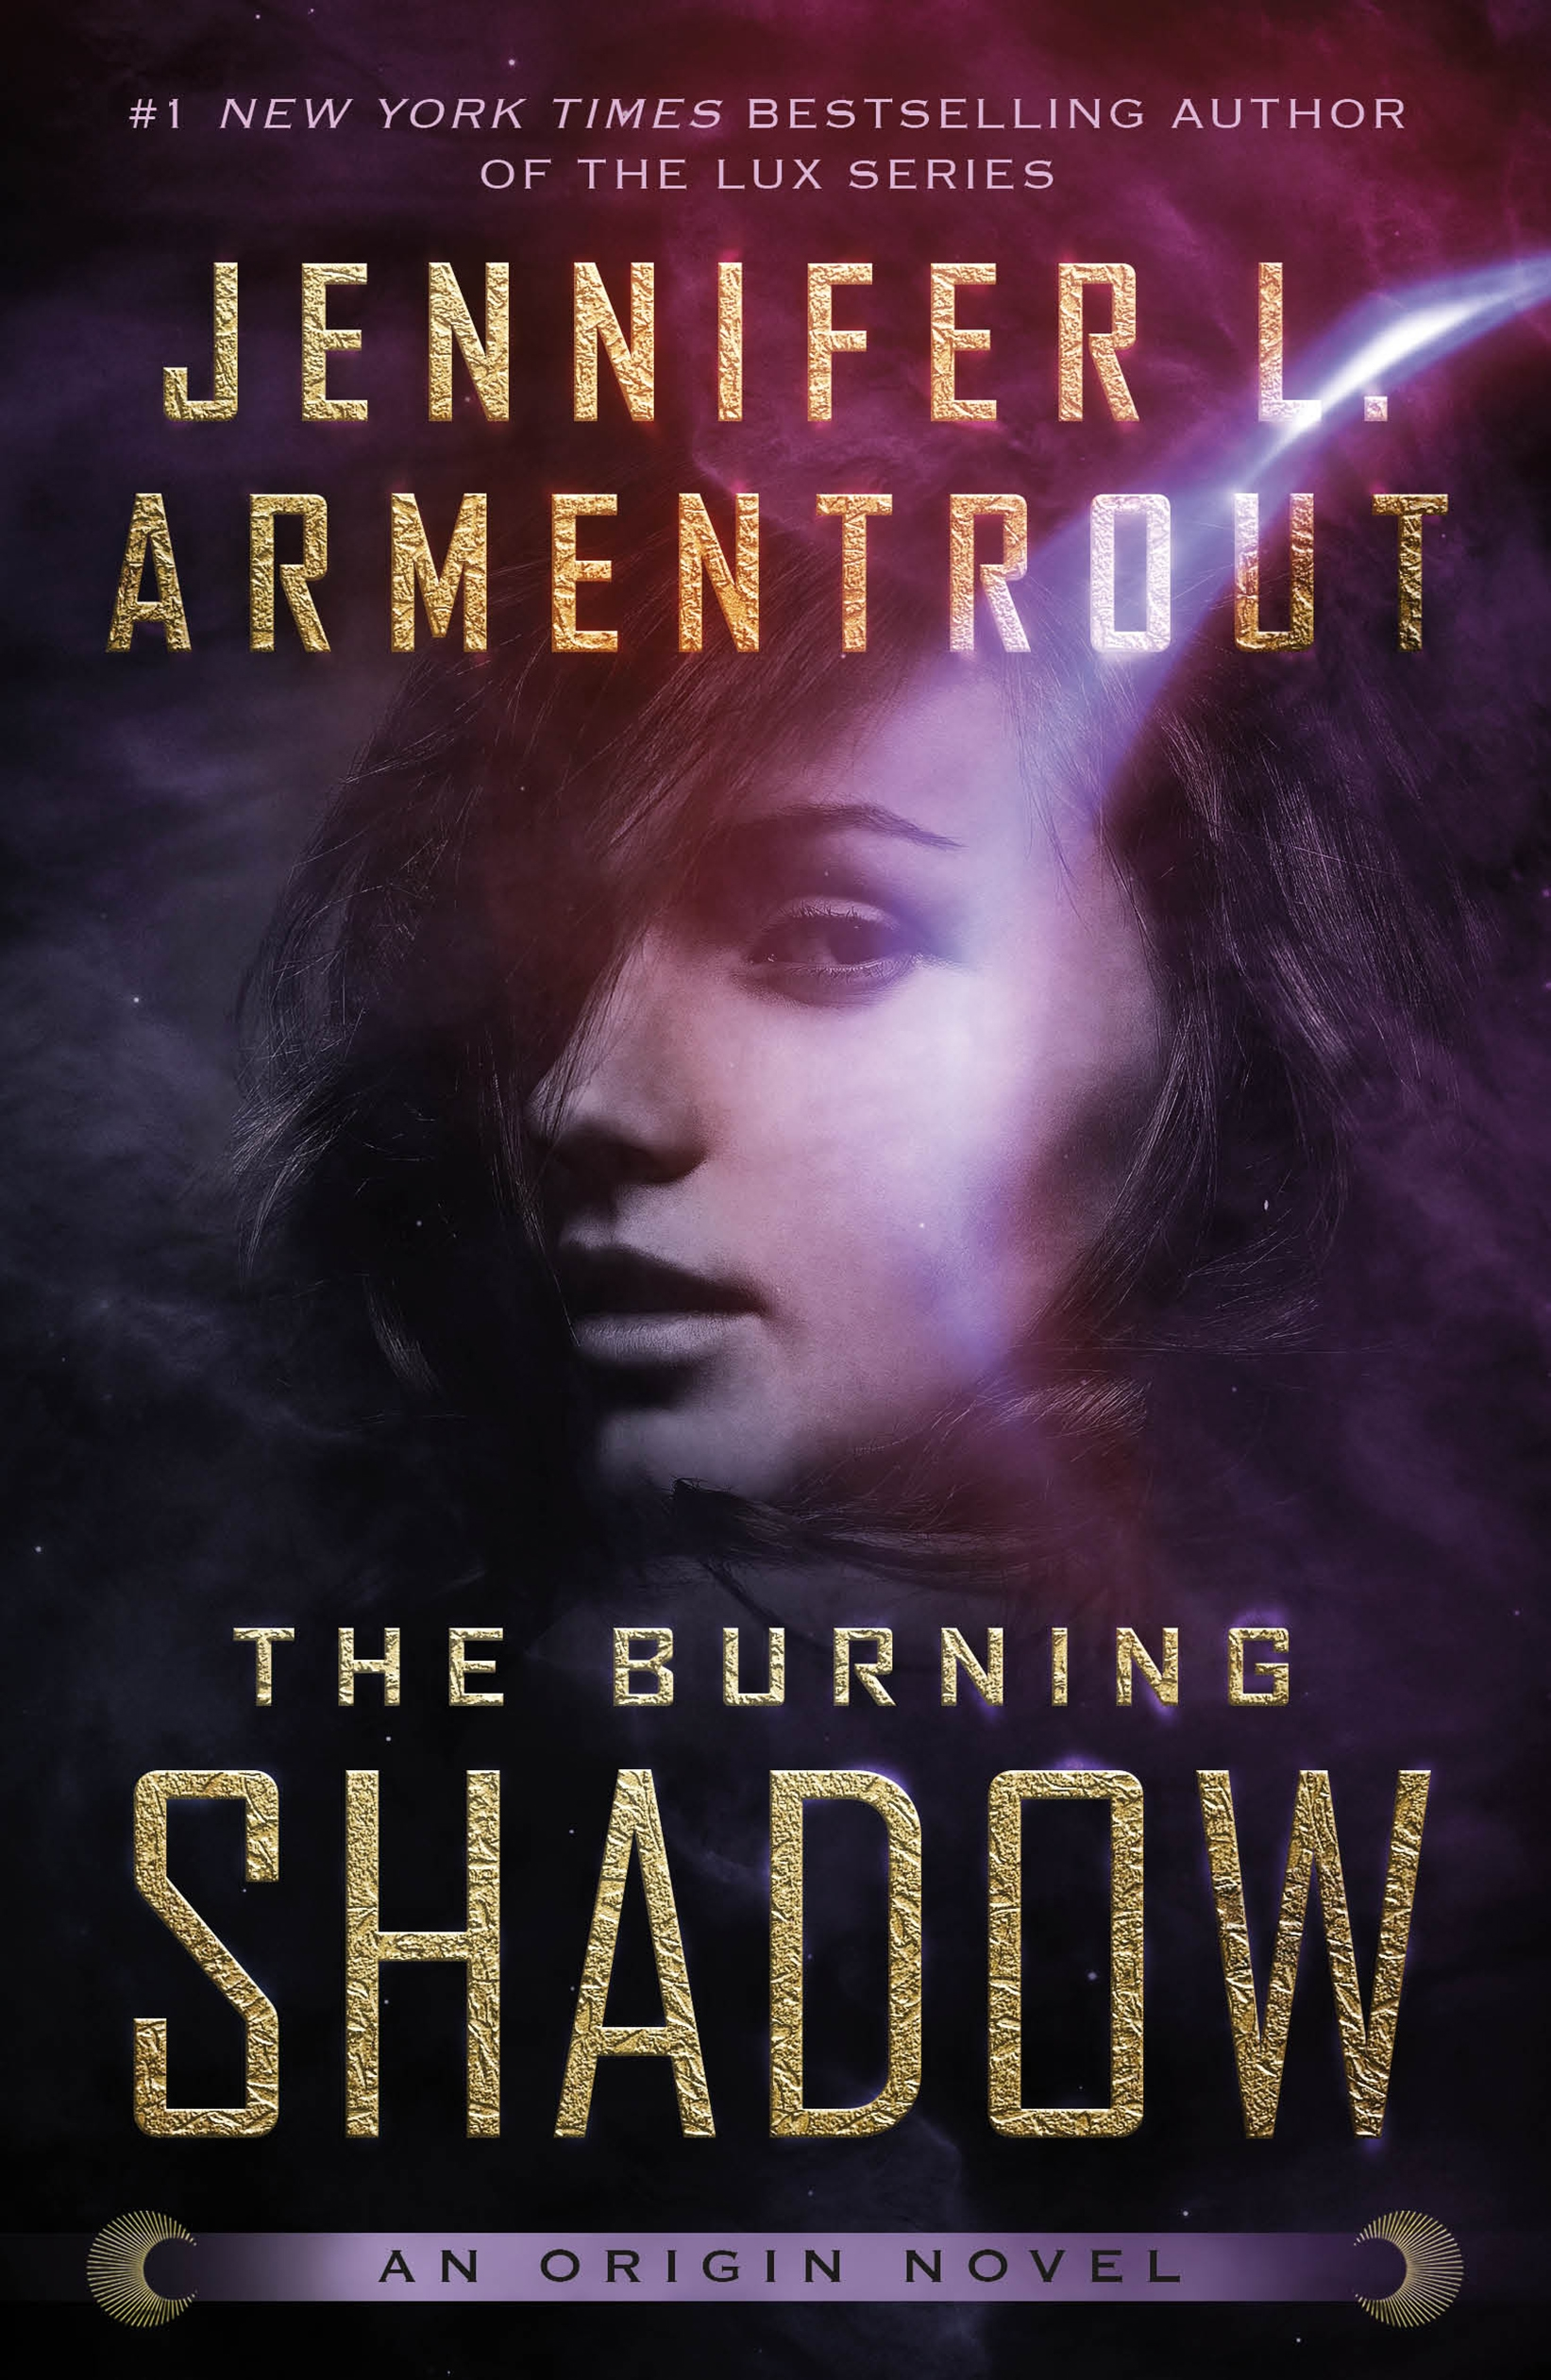 The burning shadow cover image